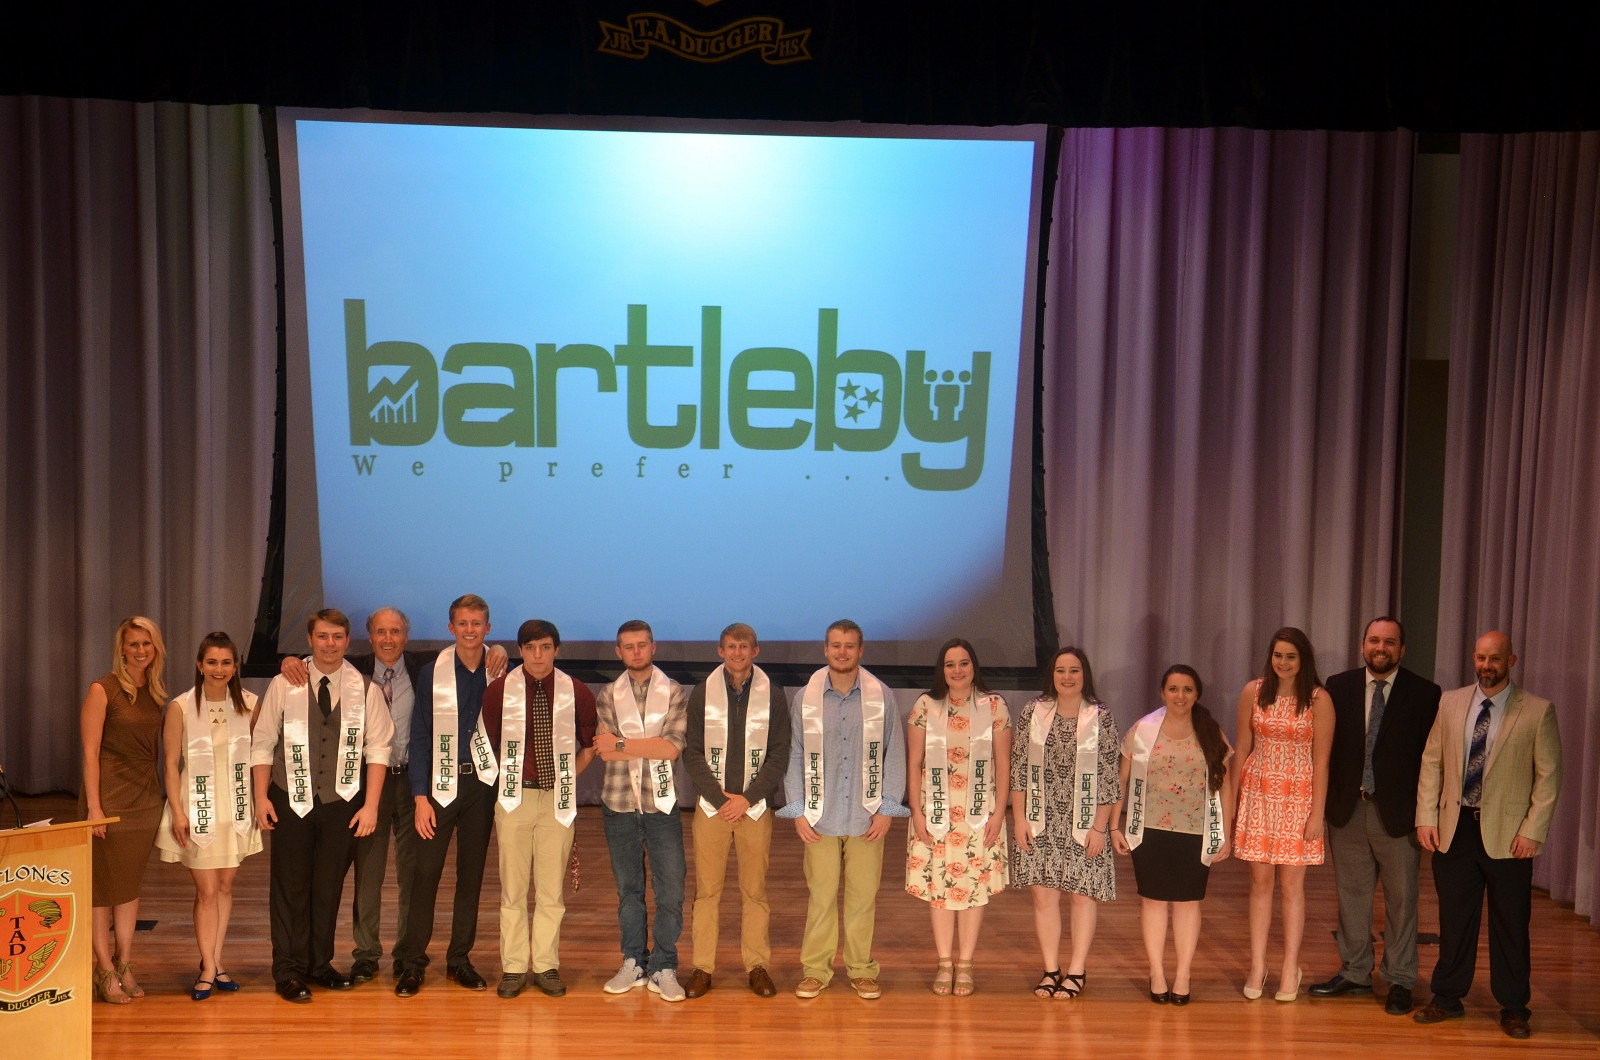 project bartleby